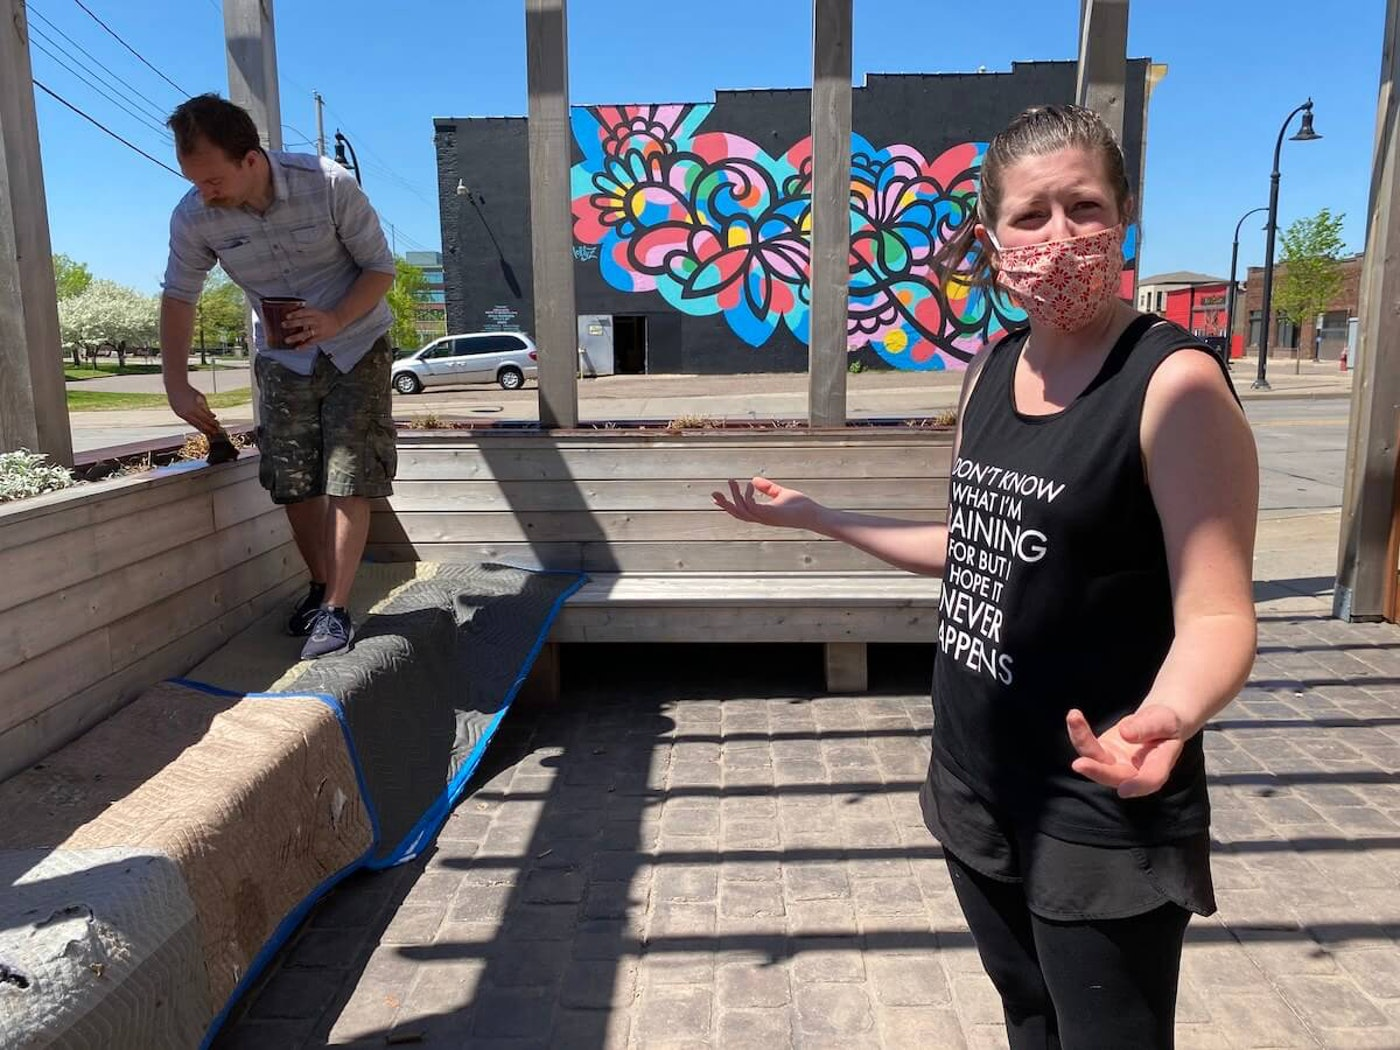 Kayla Midthun, who owns Ramone's Ice Cream Parlor in downtown Eau Claire with her husband Blayne, discusses efforts they have taken to protect customers and employees from COVID-19 as Blayne applies stain to a deck outside the shop Wednesday.